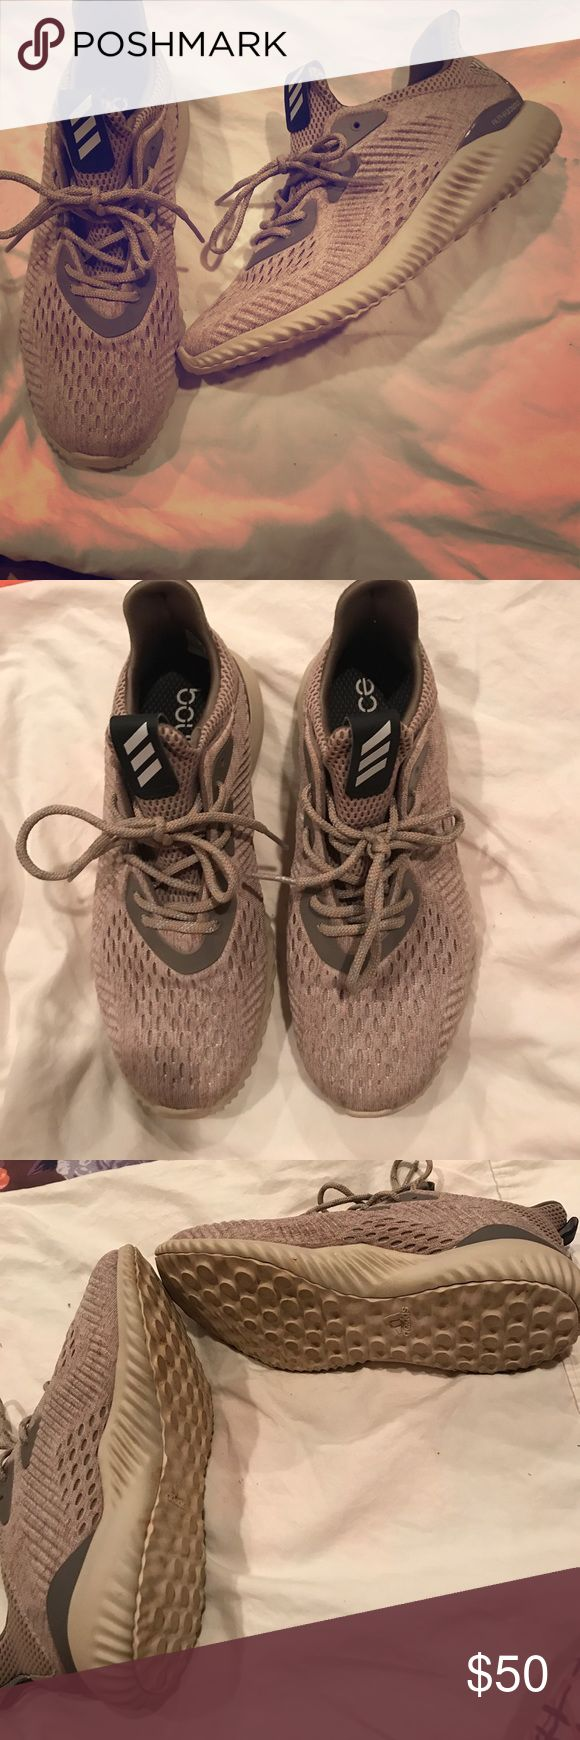 Adidas bounce tennis shoe 7.5 fit more Like 8.5. Tan adidas bounce running shoe , worn a couple times it are too big. adidas Shoes Sneakers